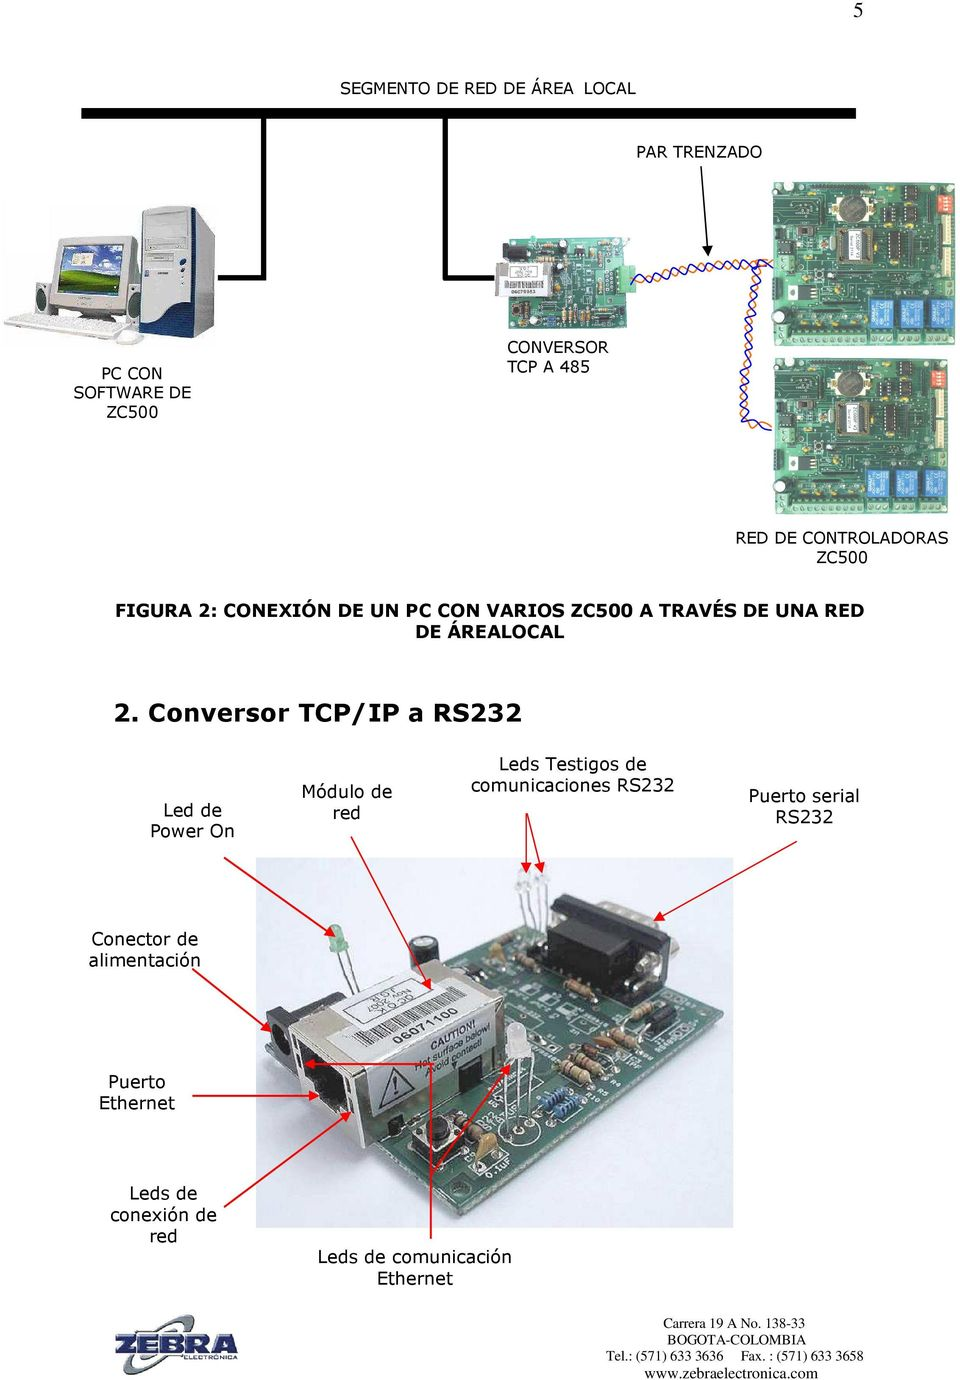 Conversor TCP/IP a RS232 Led de Power On Módulo de red Leds Testigos de comunicaciones RS232 Puerto